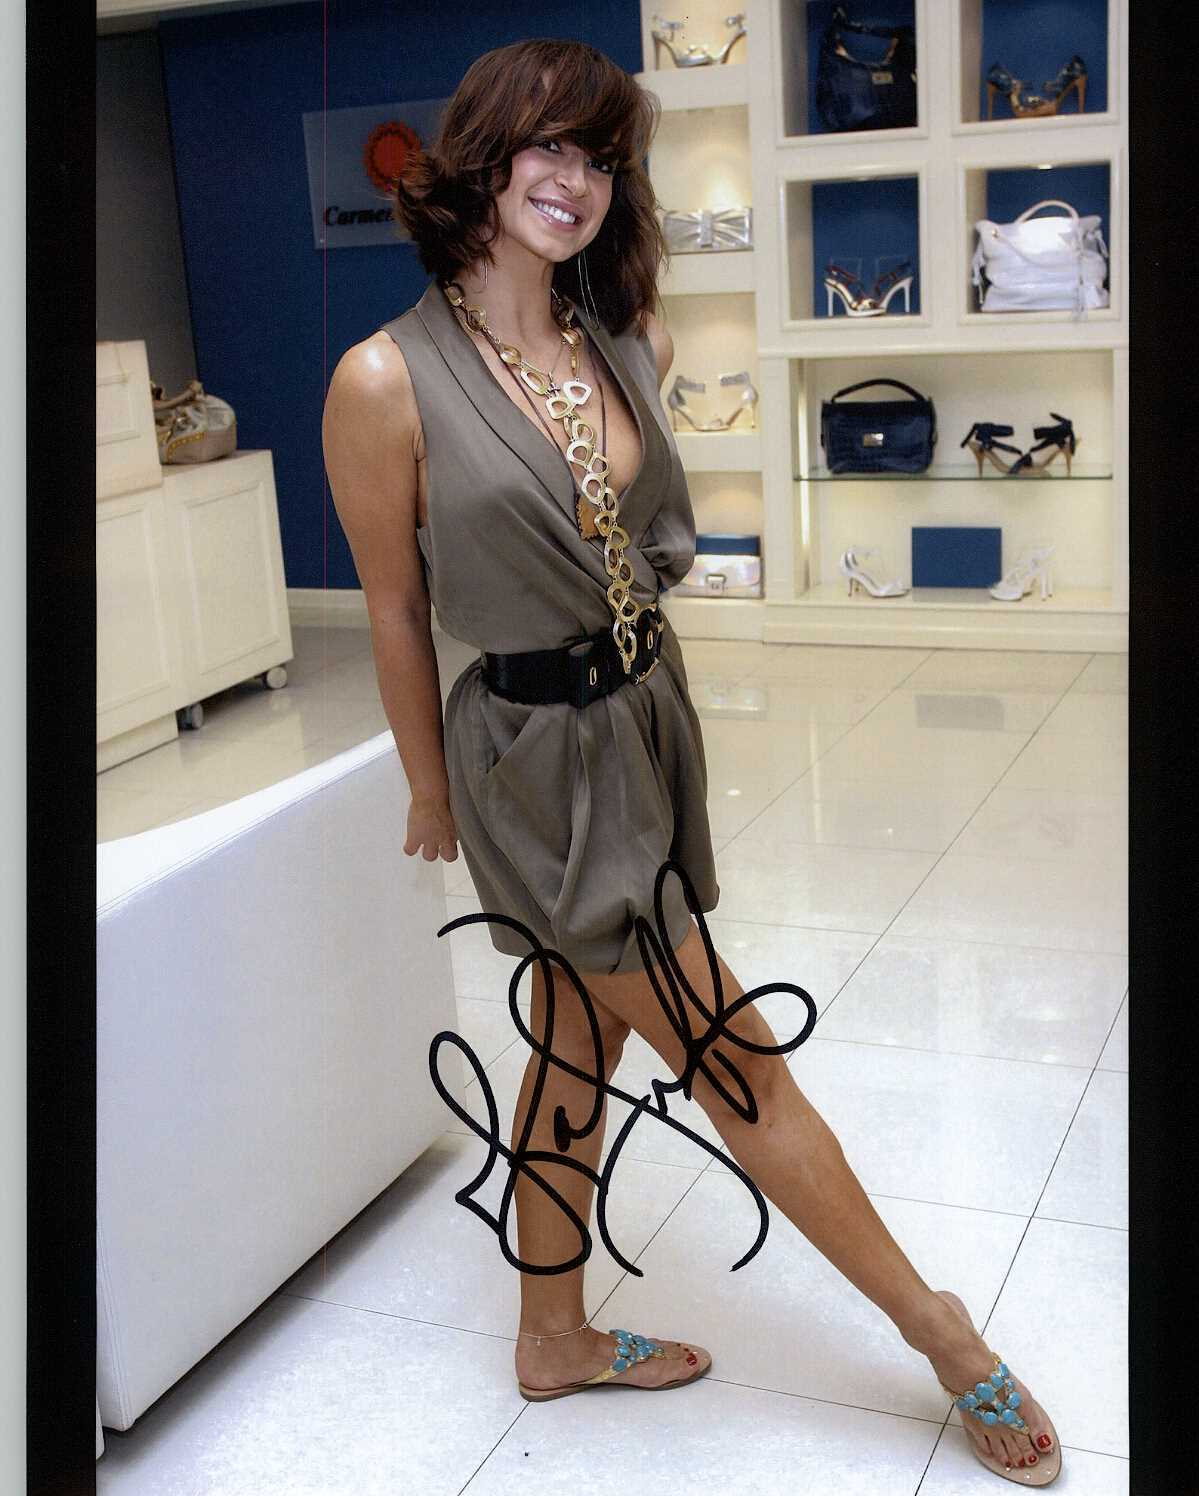 Primary image for Karina Smirnoff Signed Autographed Glossy 8x10 Photo